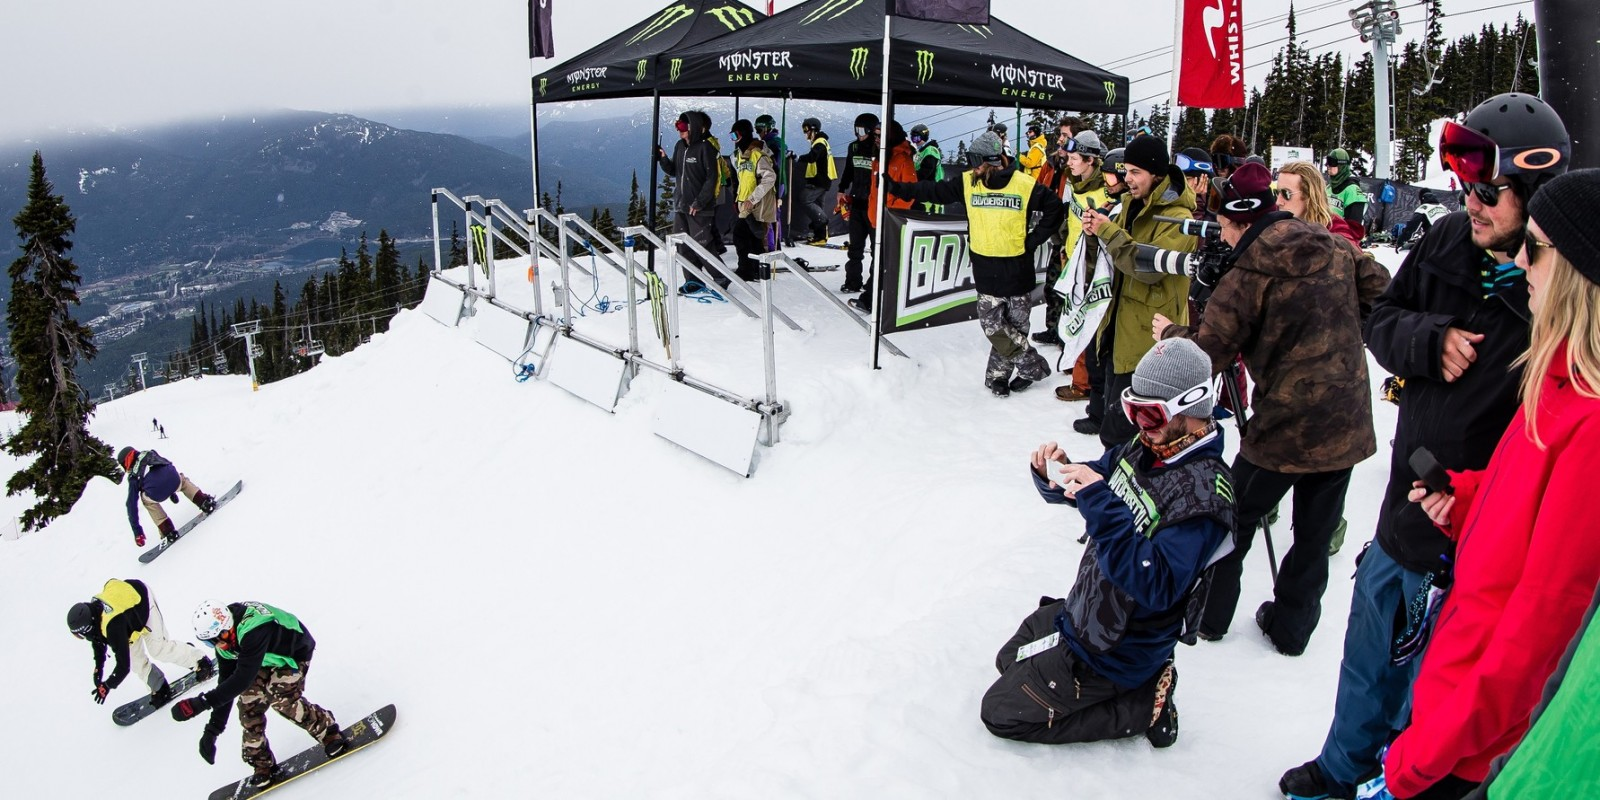 Monster Energy at the 2016 Boarderstyle World Championship in Whistler, BC